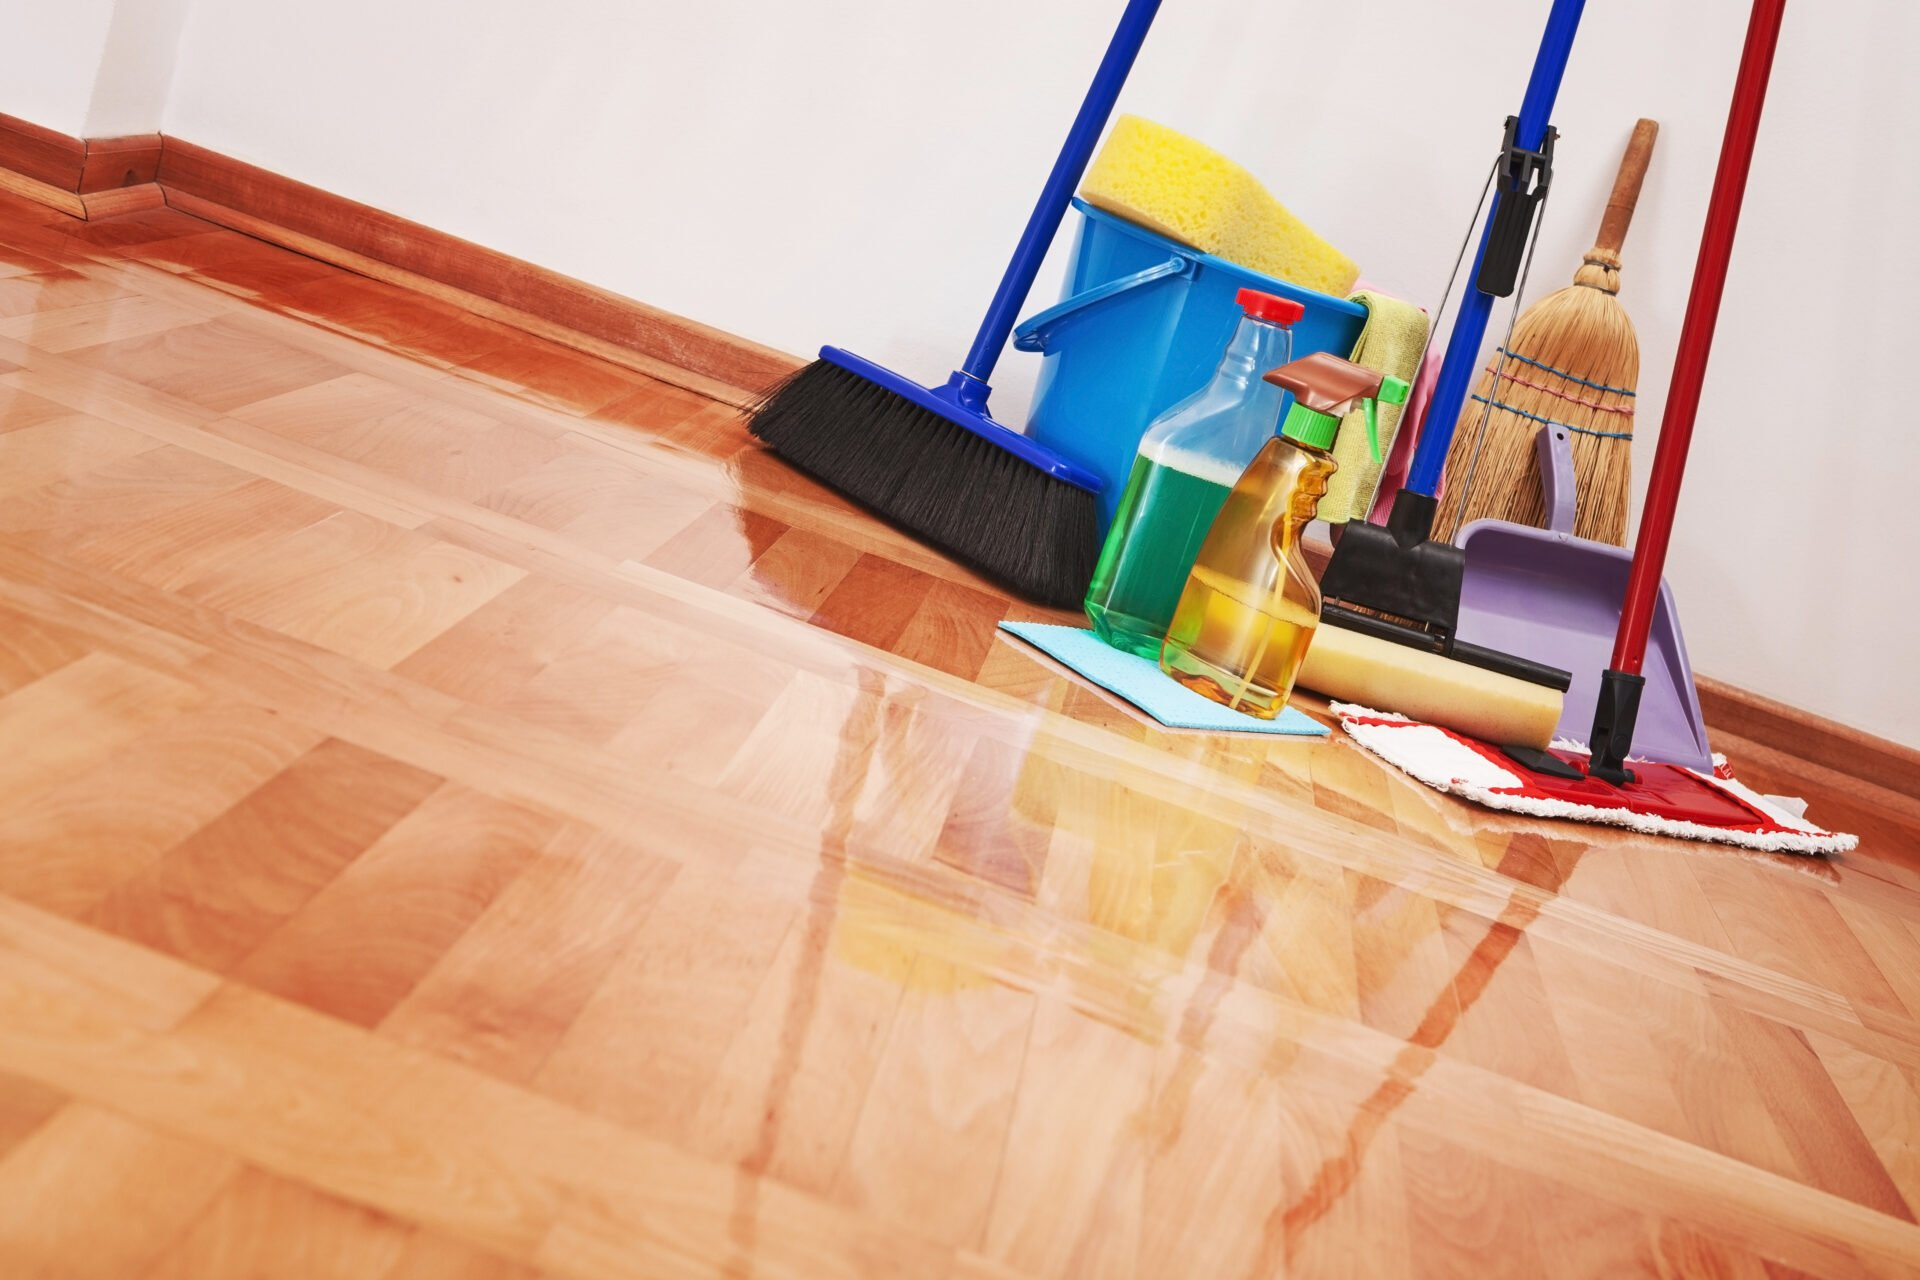 Cleaning products used to clean wood floors